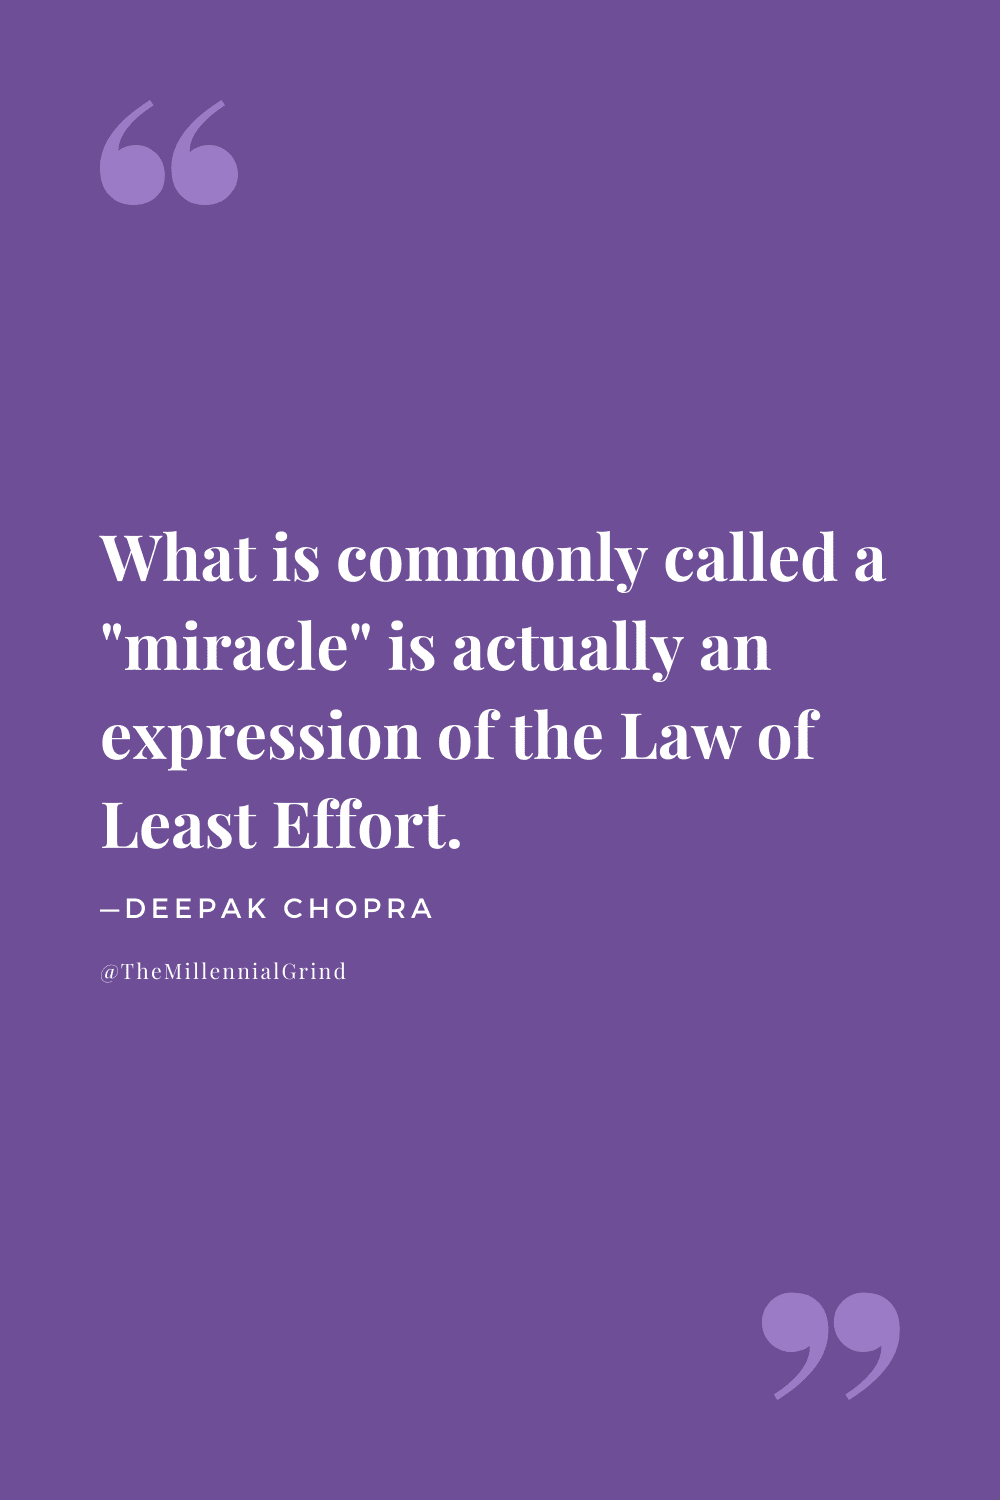 The Law of Least Effort Quote